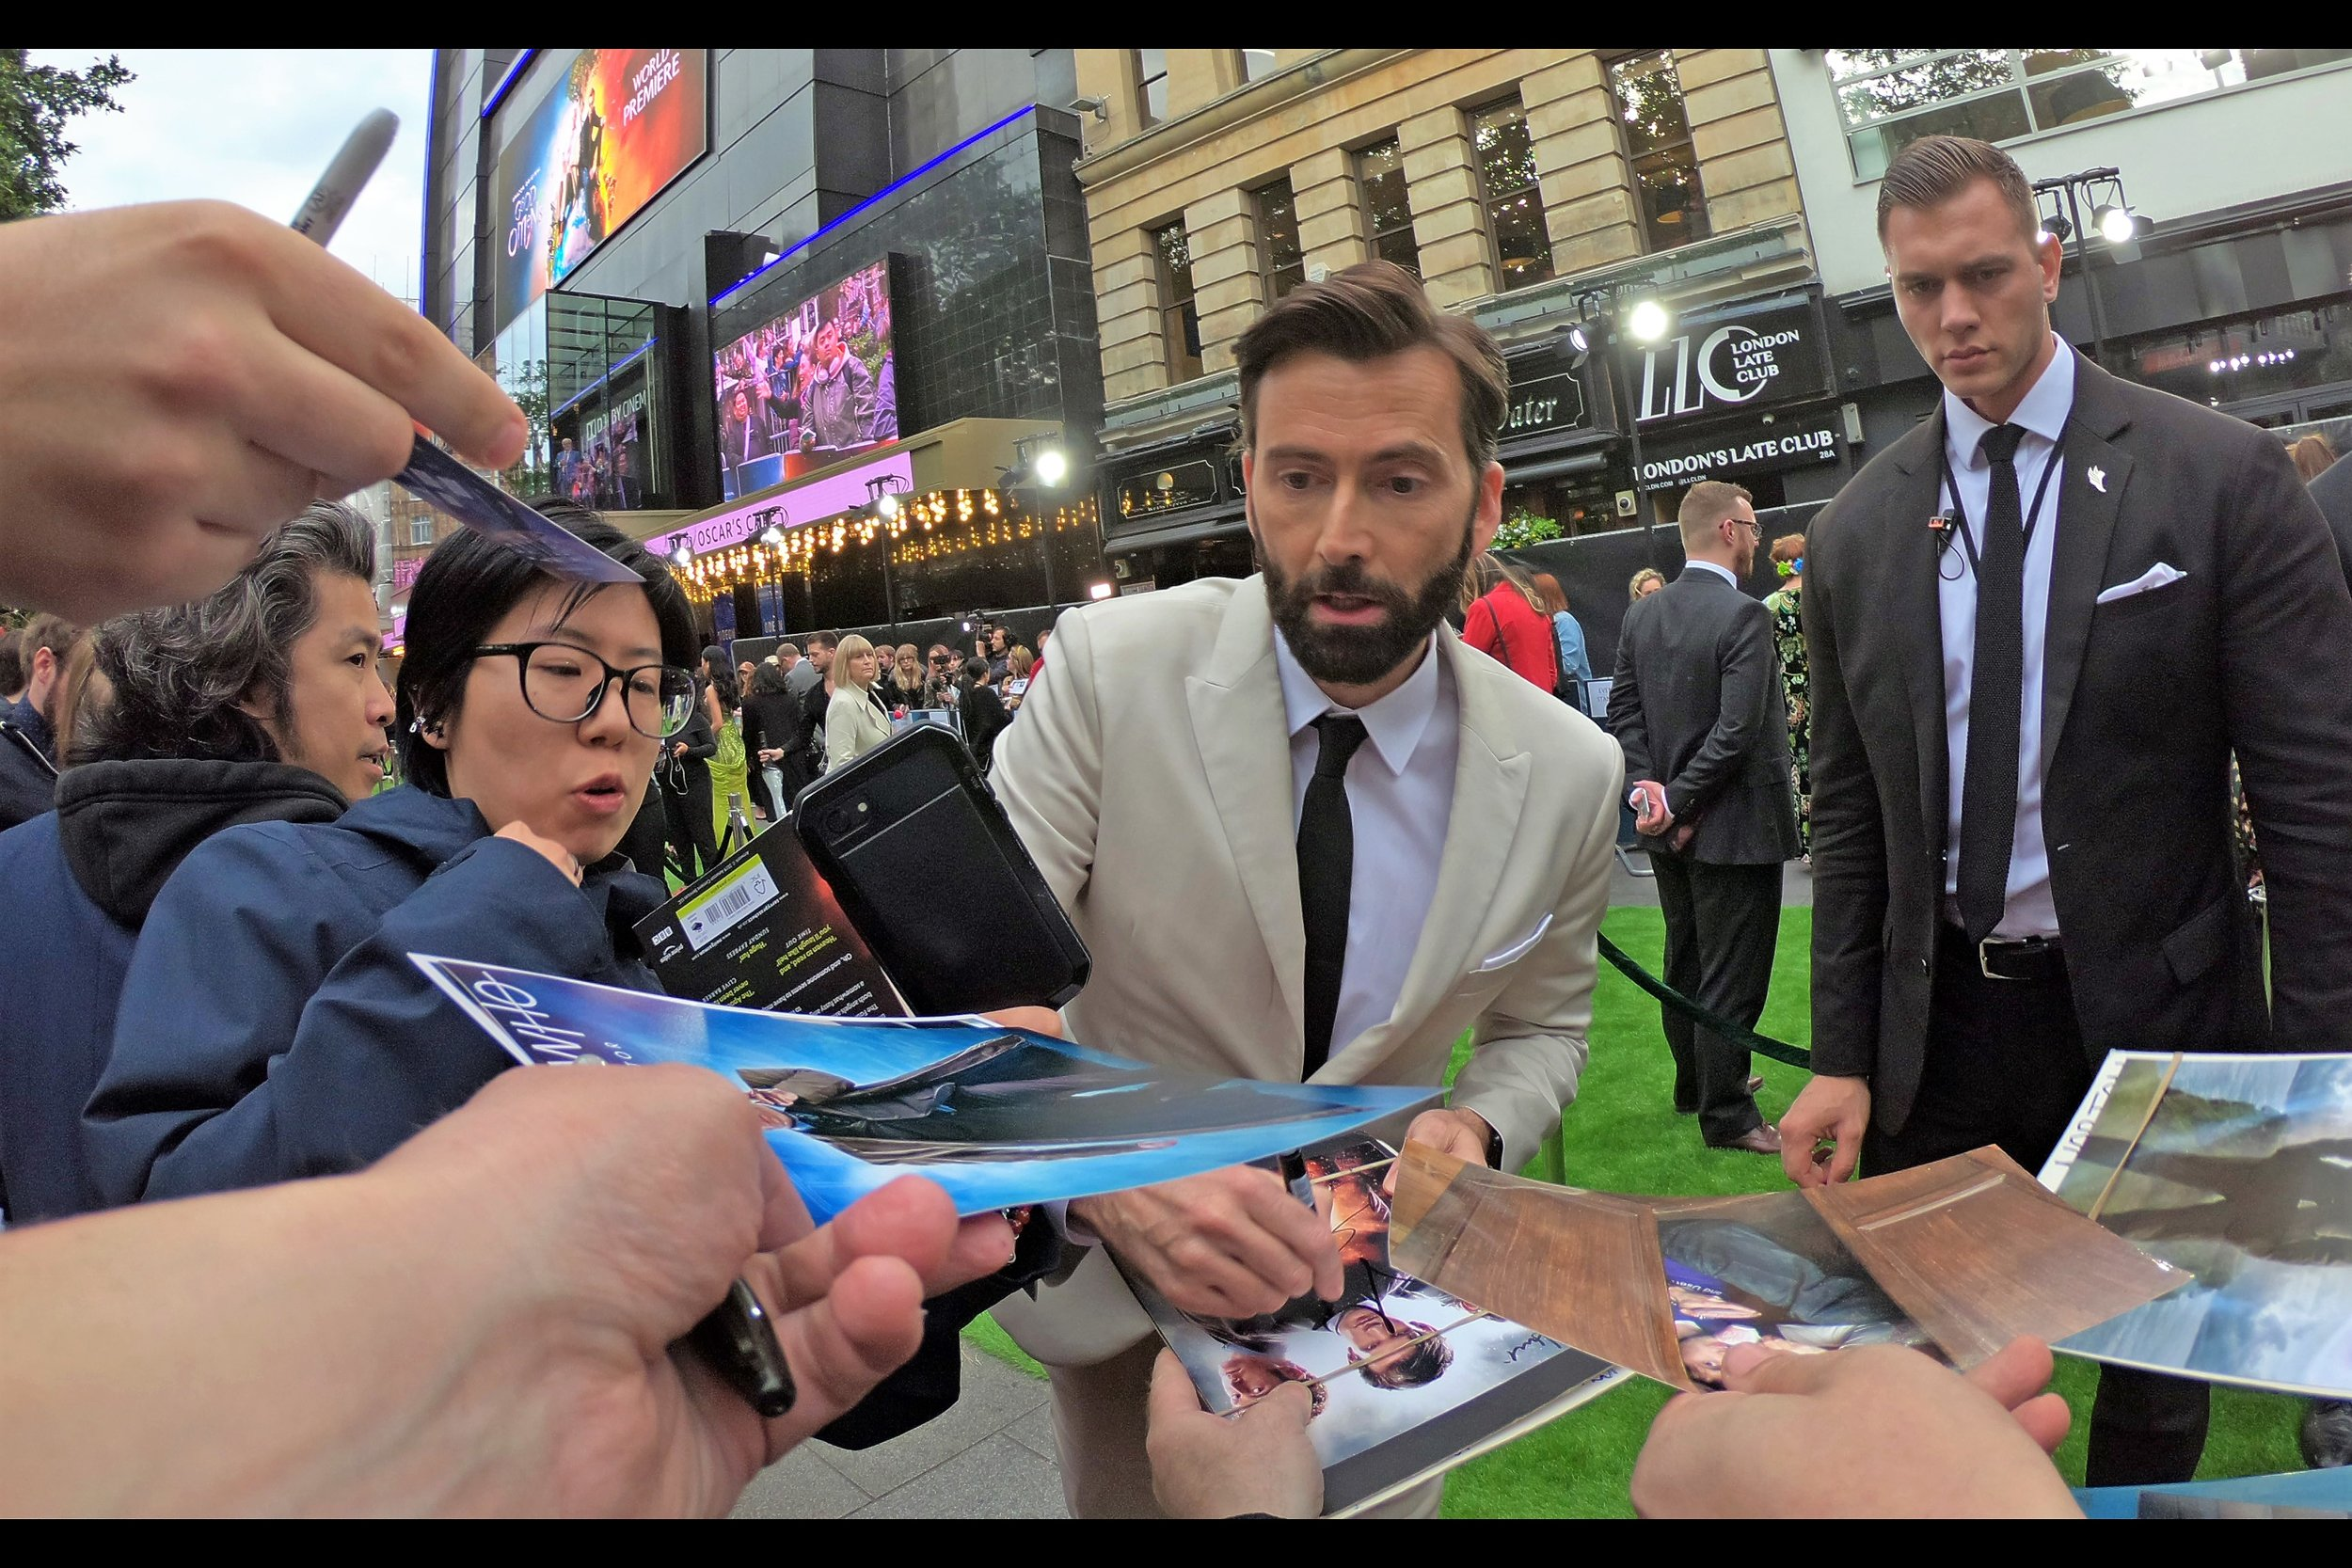 David Tennant briefly signs, and I just want to say that I am standing in the middle of this view and not one of these hands in the photo are mine. It shouldn't be possible… but it is. And I'm happy because those hands are protecting me from the possible wrath of David Tennant.